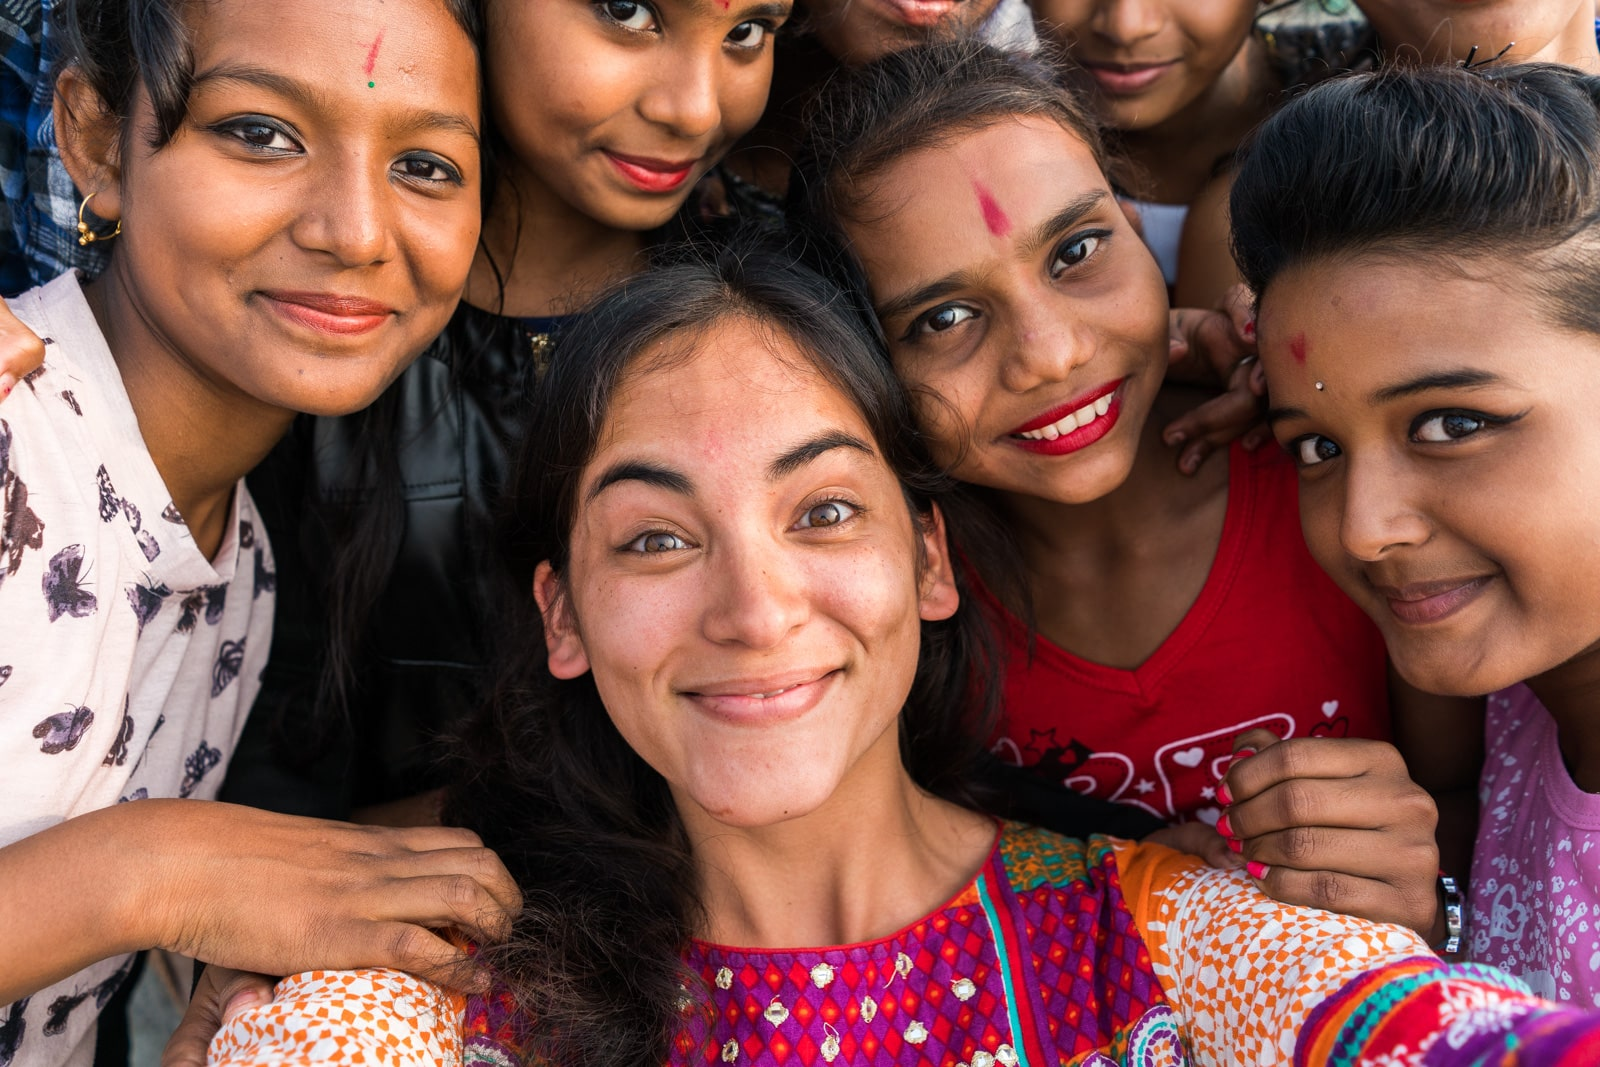 Reverse culture shock from long-term travel - Selfie with girls in Assam, India - Lost With Purpose travel blog